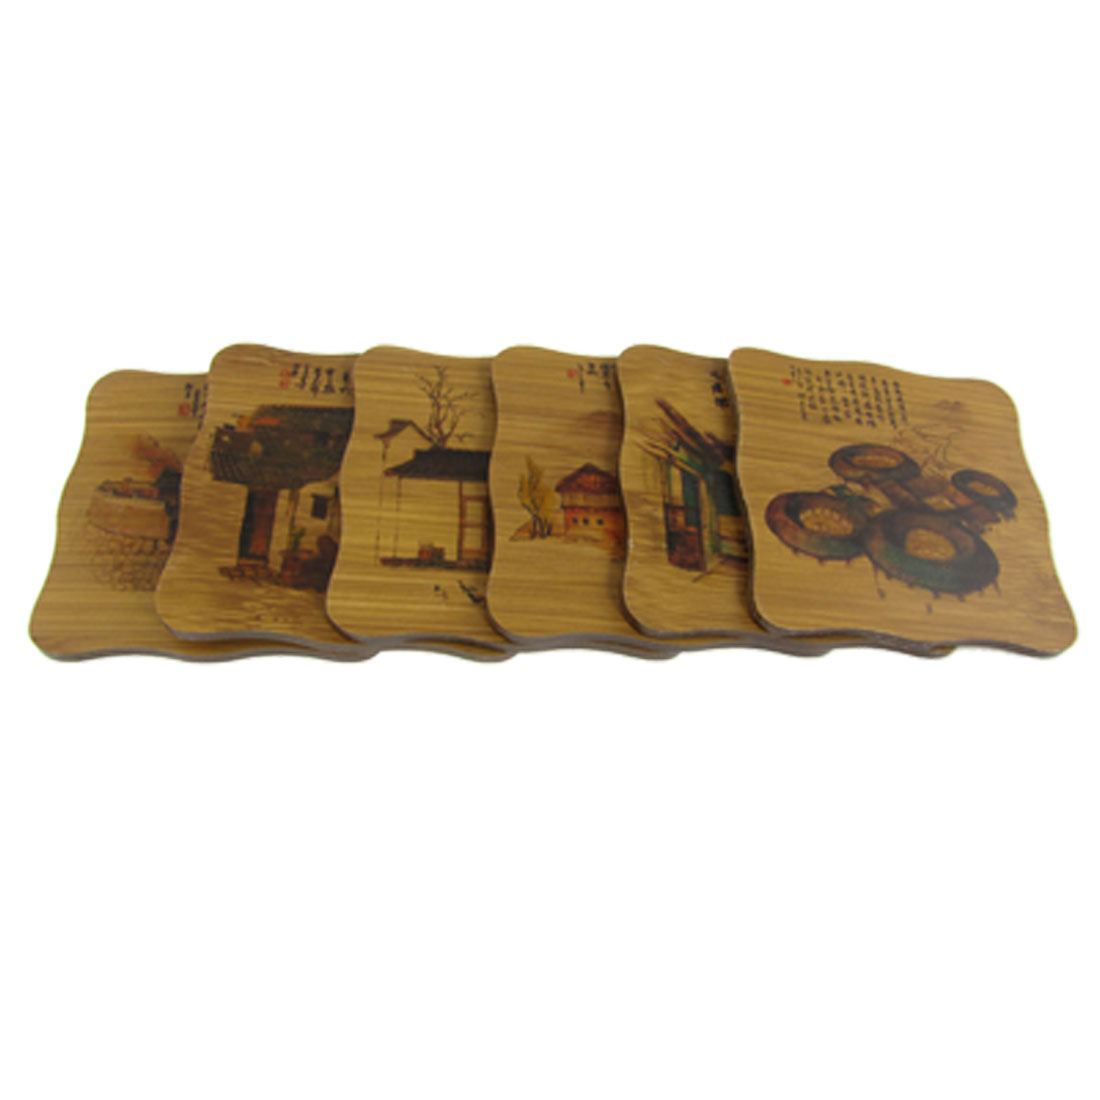 6 Pcs Village Tree Poem Print Square Bamboo Coasters Tea Glass Cup Mats w Holder